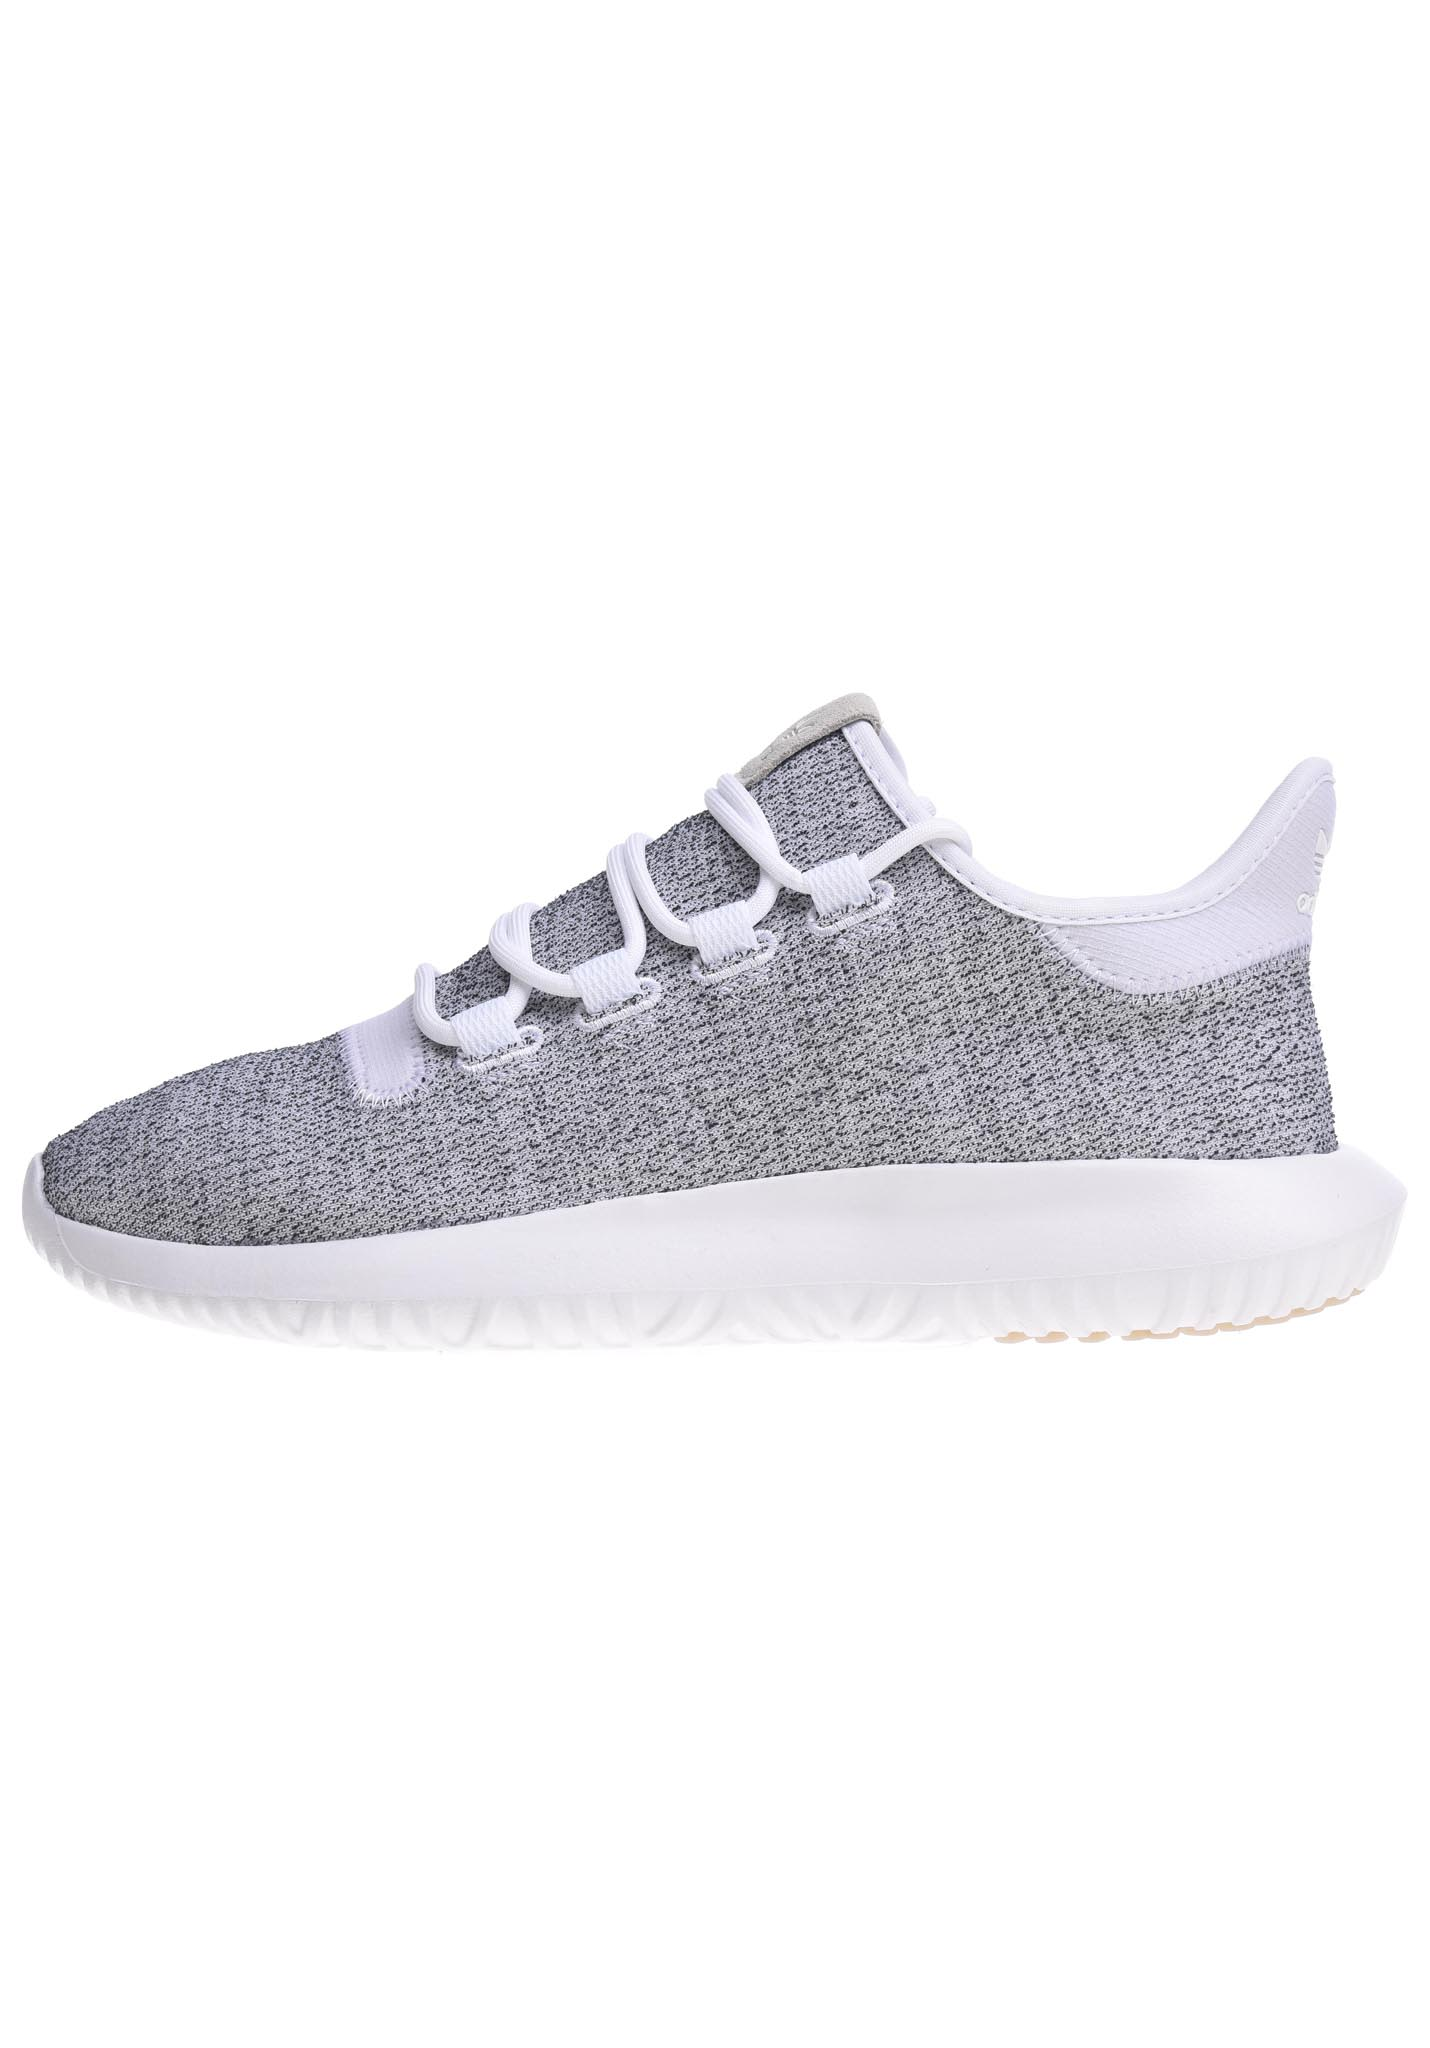 ADIDAS ORIGINALS Tubular Shadow - Baskets